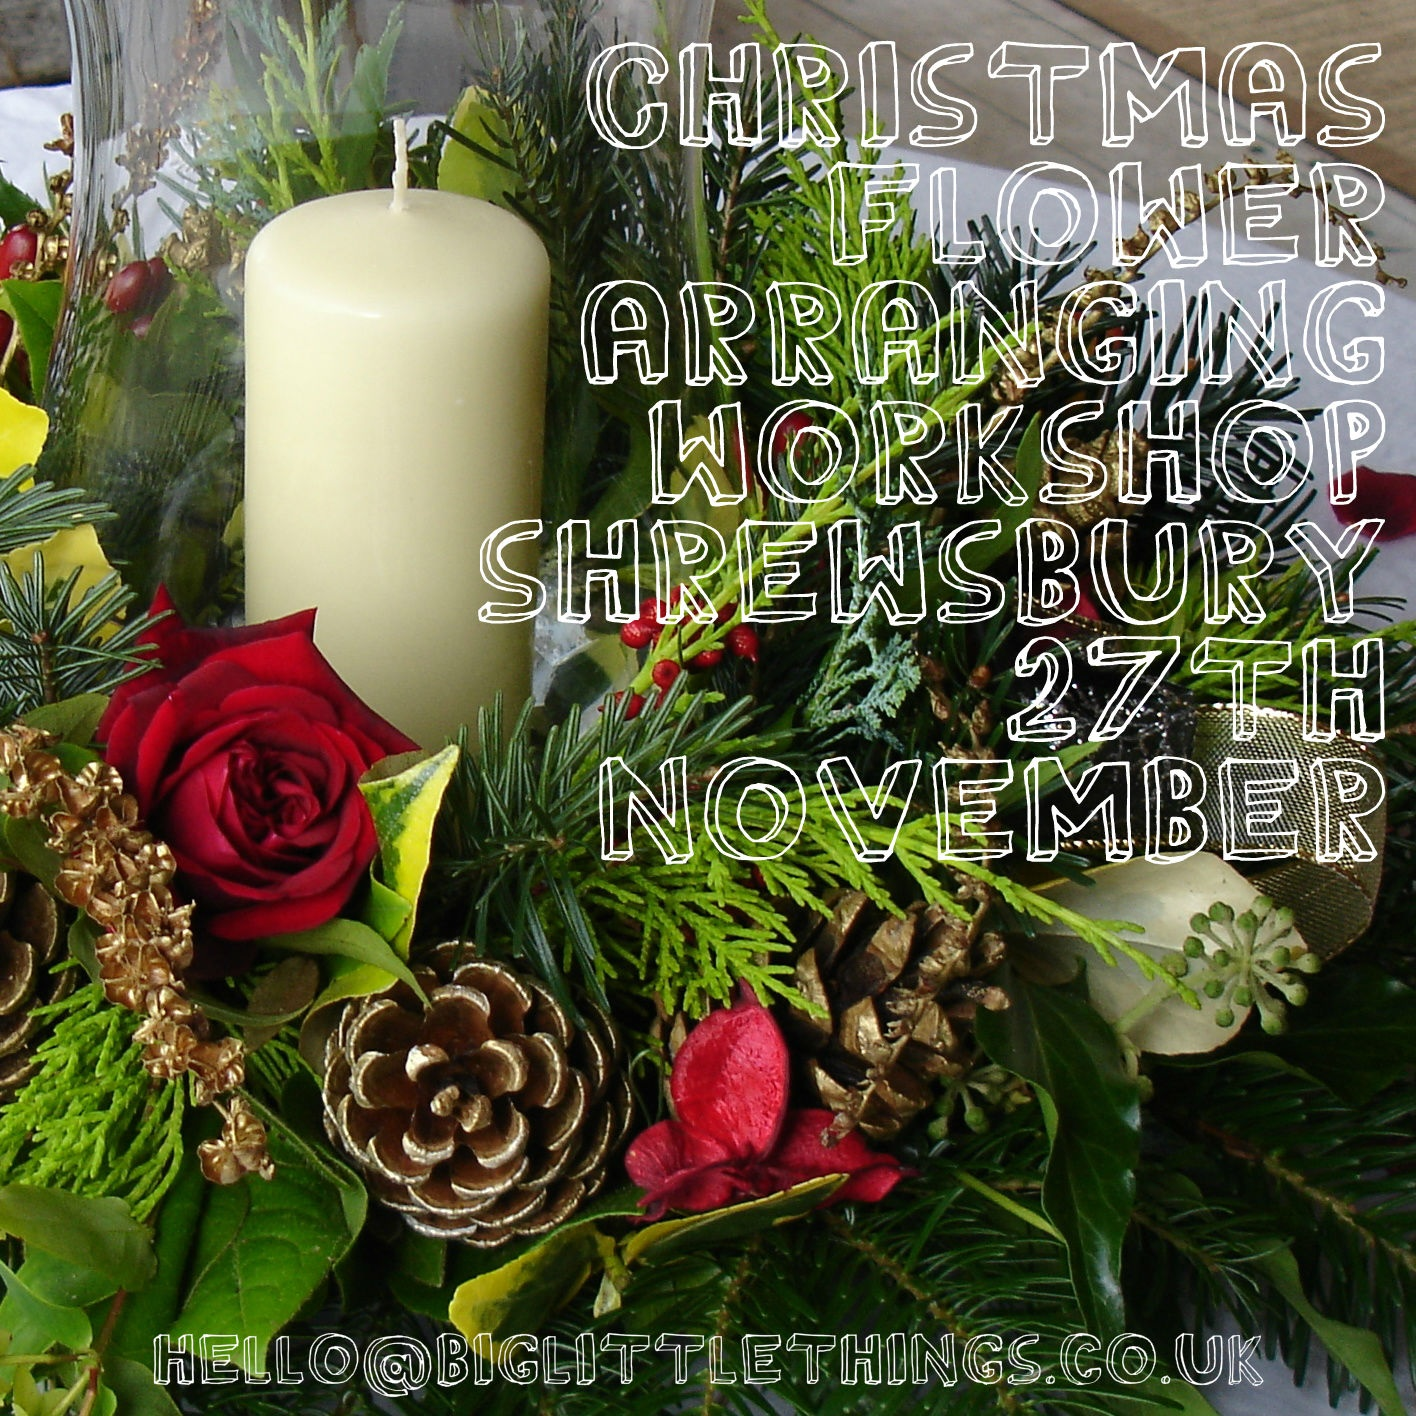 Christmas flower arranging workshops 2014